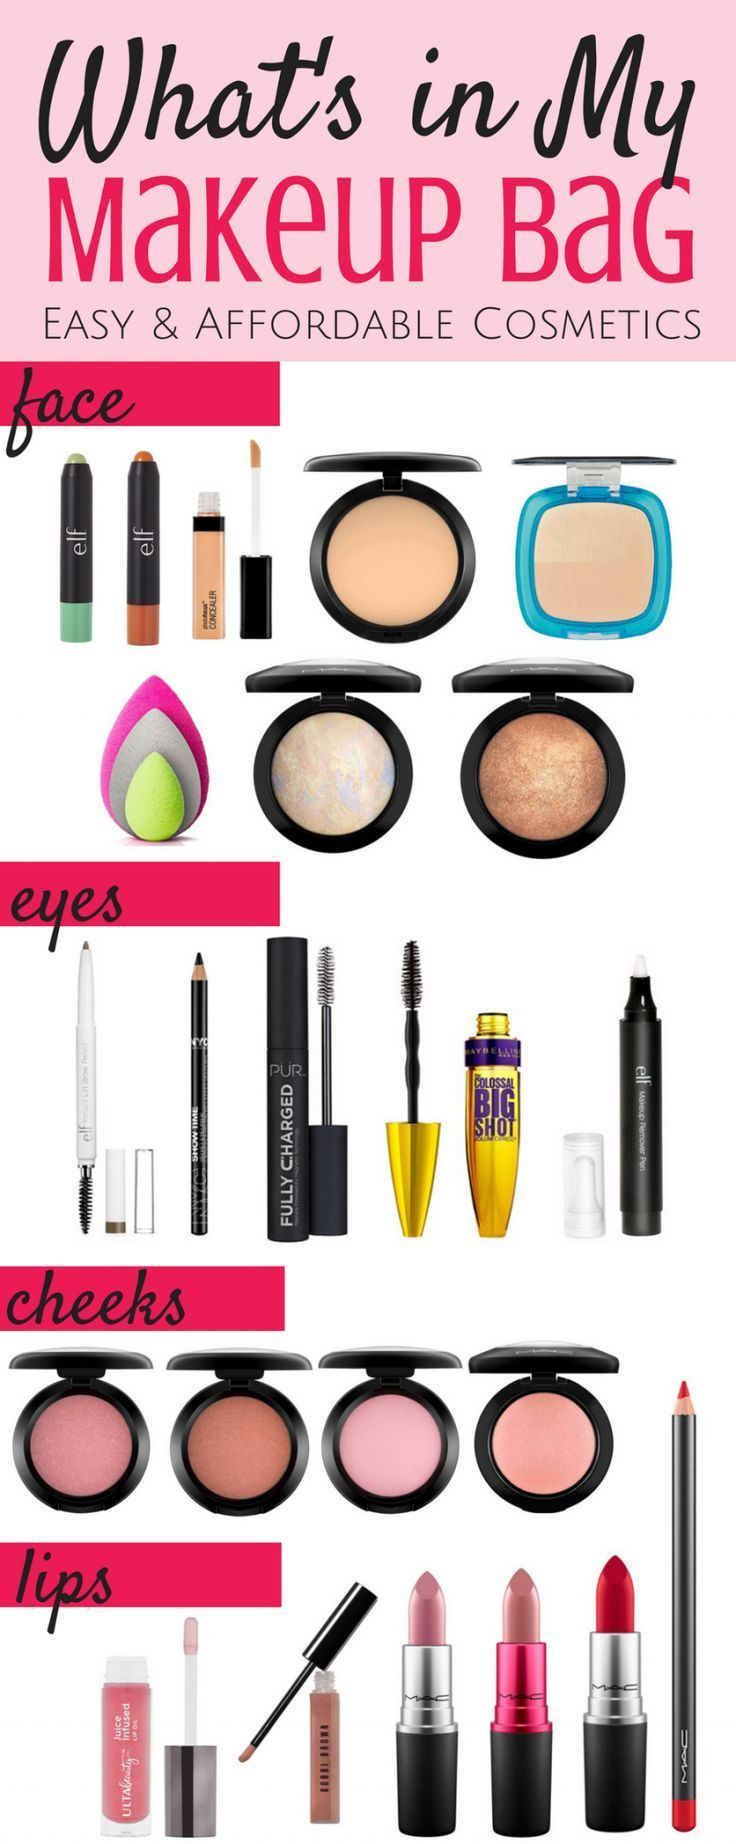 Easy to use, affordable makeup products for a busy mom on the go! Makeup | Makeup tips | Beauty | Beauty Tips | Concealer | Blush | Contour | Hightlight | Mascara | Eyeliner | Lip gloss | Eyebrows | Eyebrow shaping | Eyebrow brush | Eyebrow scupt | Microblading | How to draw eyebrows | How to fill eyebrows | How to contour and highlight | Makeup hack | #makeup #makeuplover #makeupjunkie #beauty #beautyblog #beautytips #beautyblogger | Beauty Hacks | Makeup Ideas | Makeup Tutorials